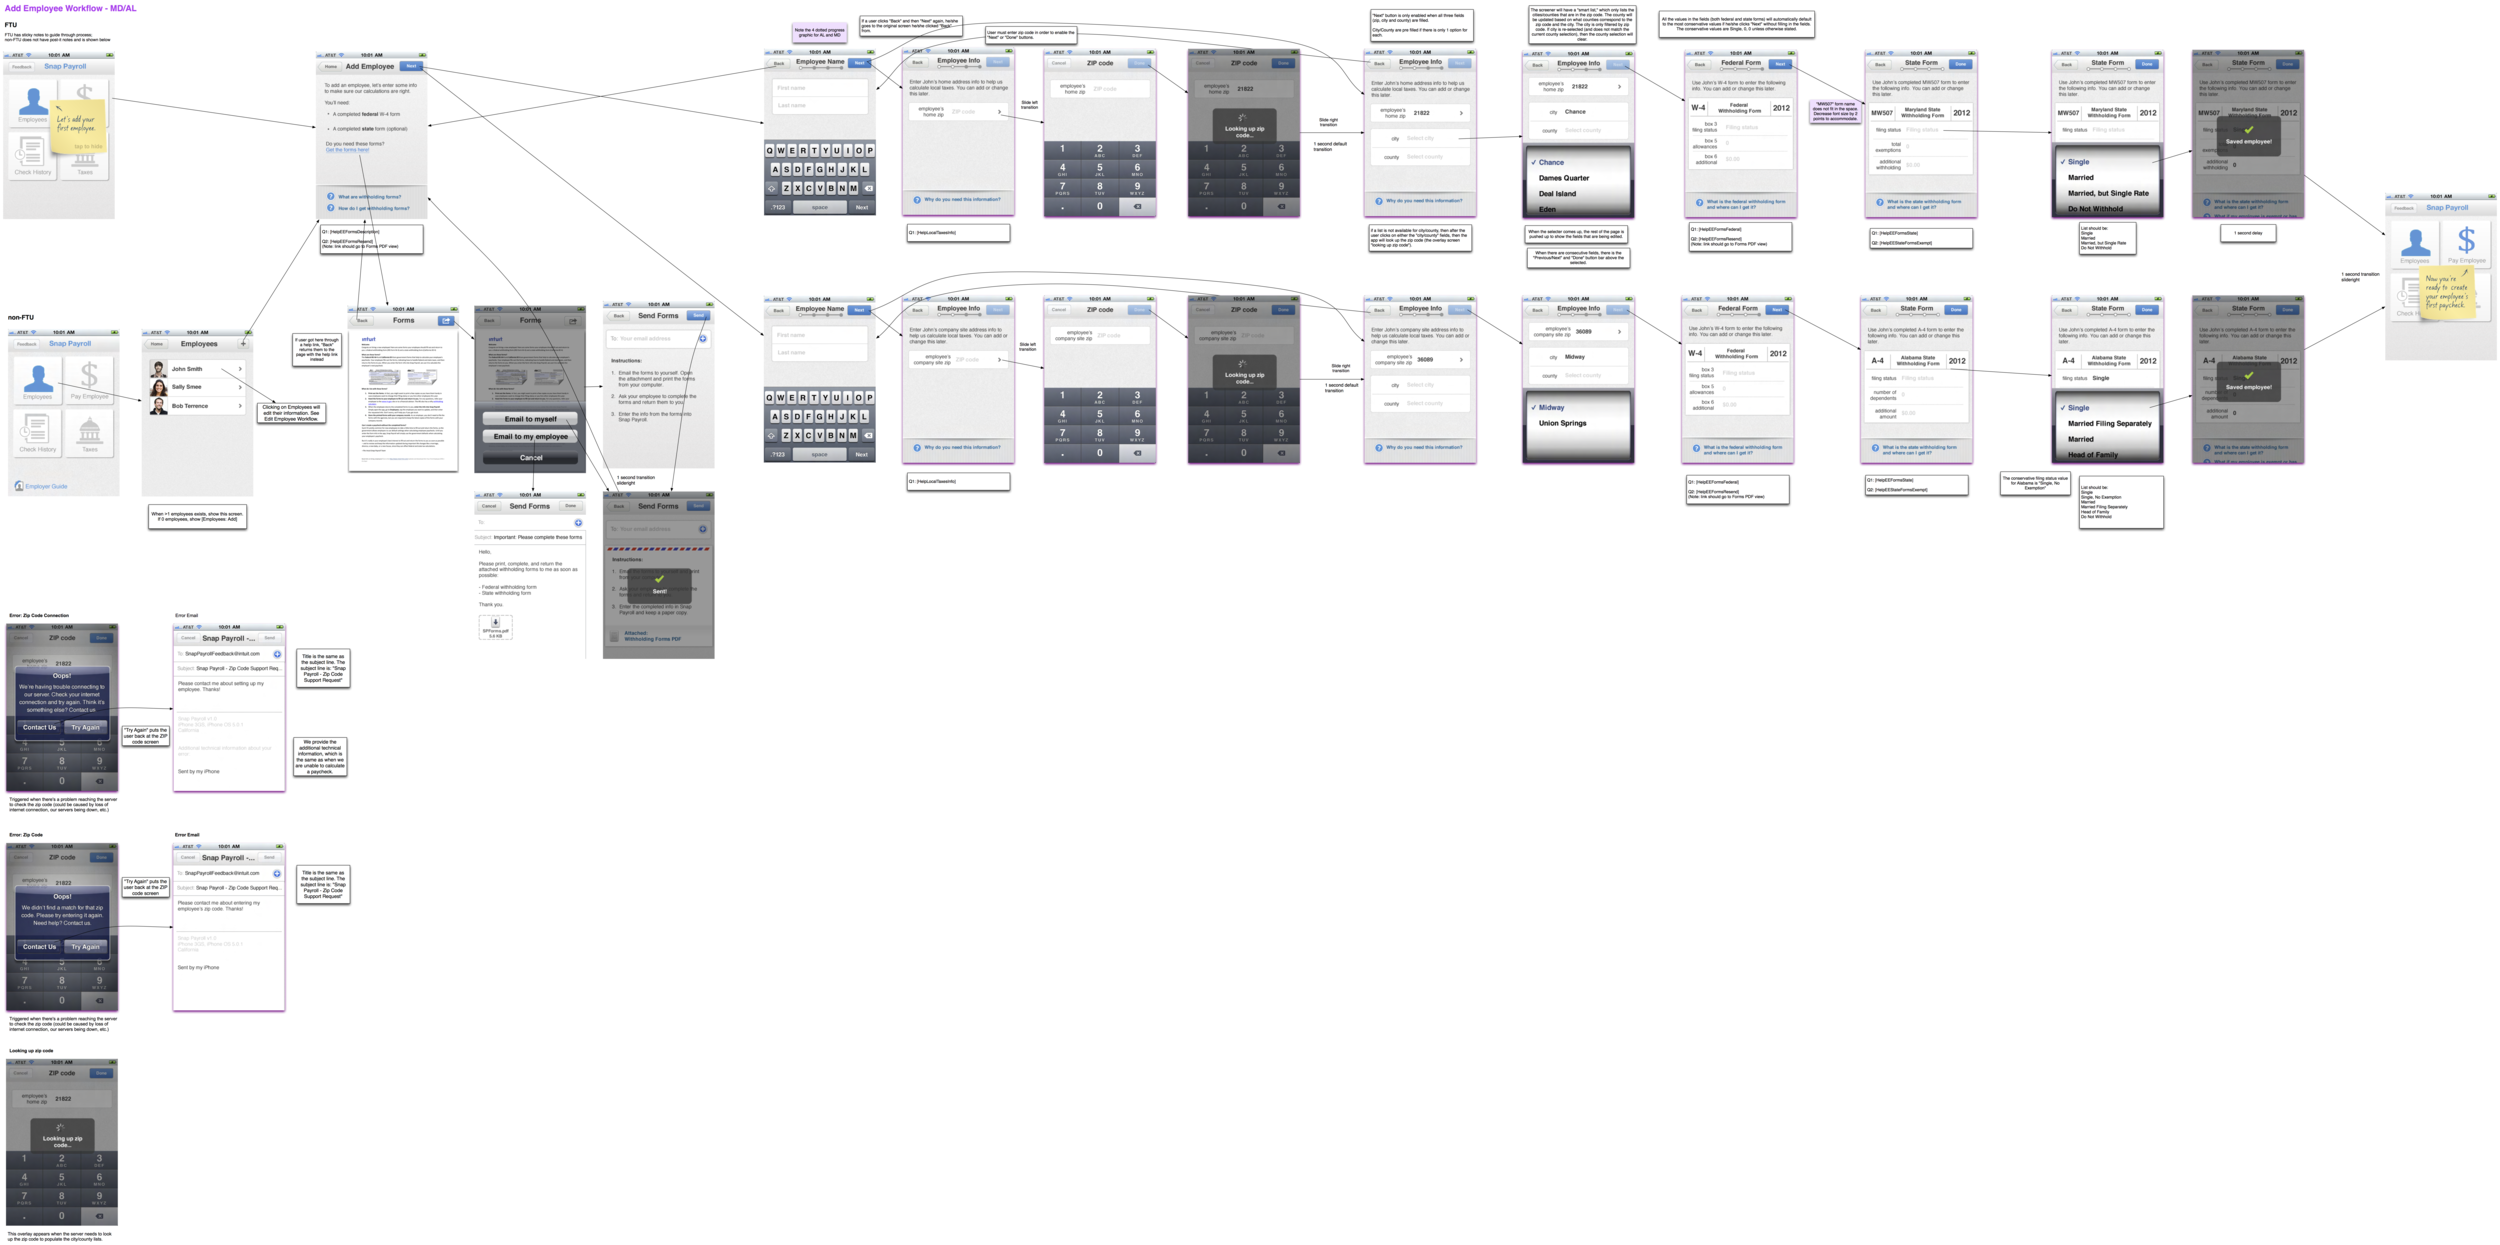 Workflow with screens for design reviews